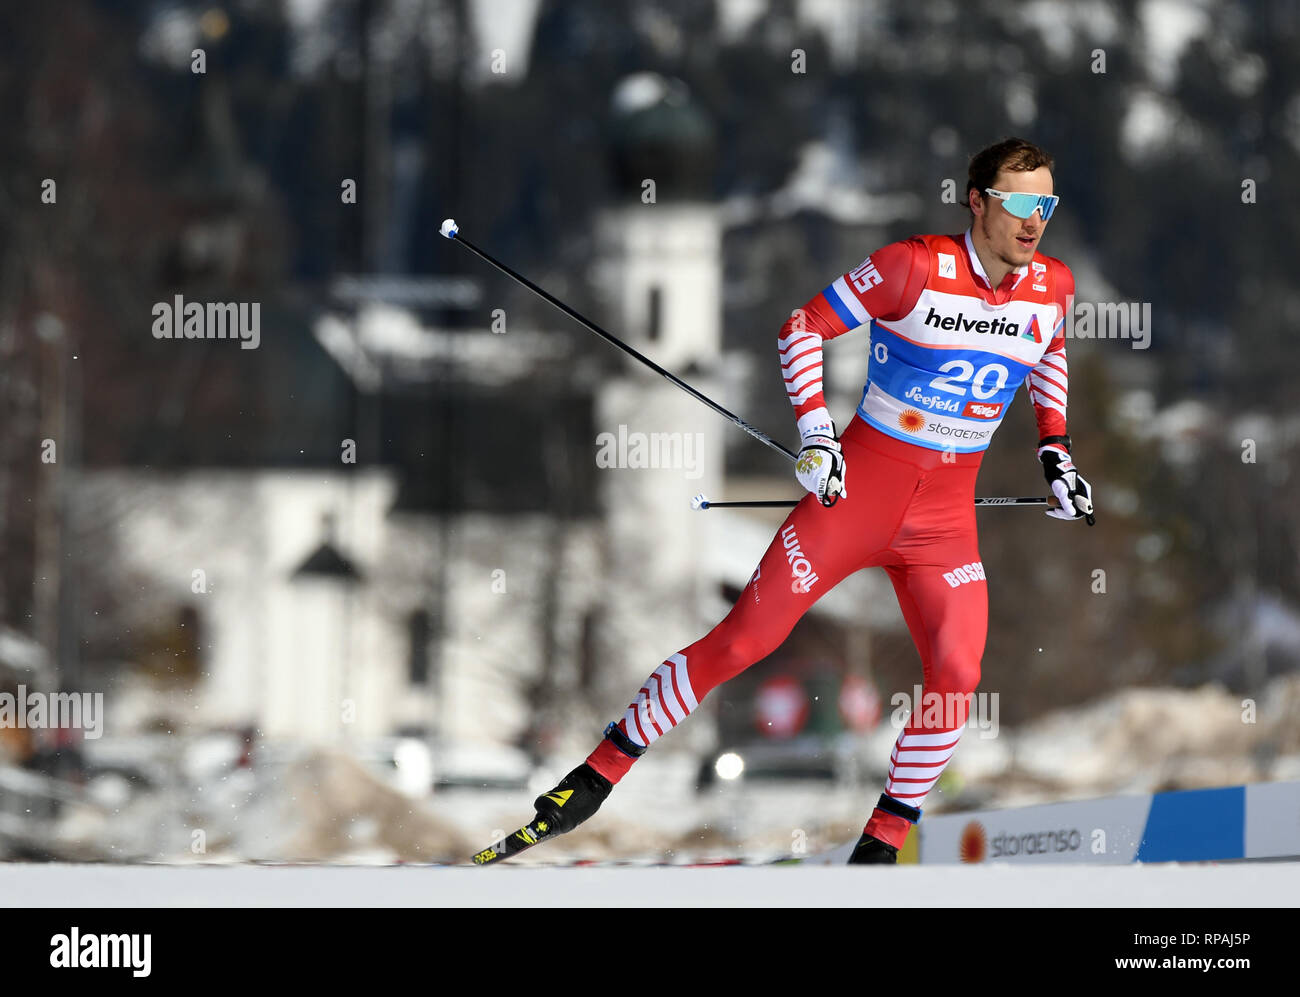 Seefeld, Austria. 21st Feb, 2019. Nordic skiing, World Championships, Cross Country, Sprint Freestyle, Men. Gleb Retiwych from Russia on the line. Credit: Hendrik Schmidt/dpa-Zentralbild/ZB/dpa/Alamy Live News - Stock Image